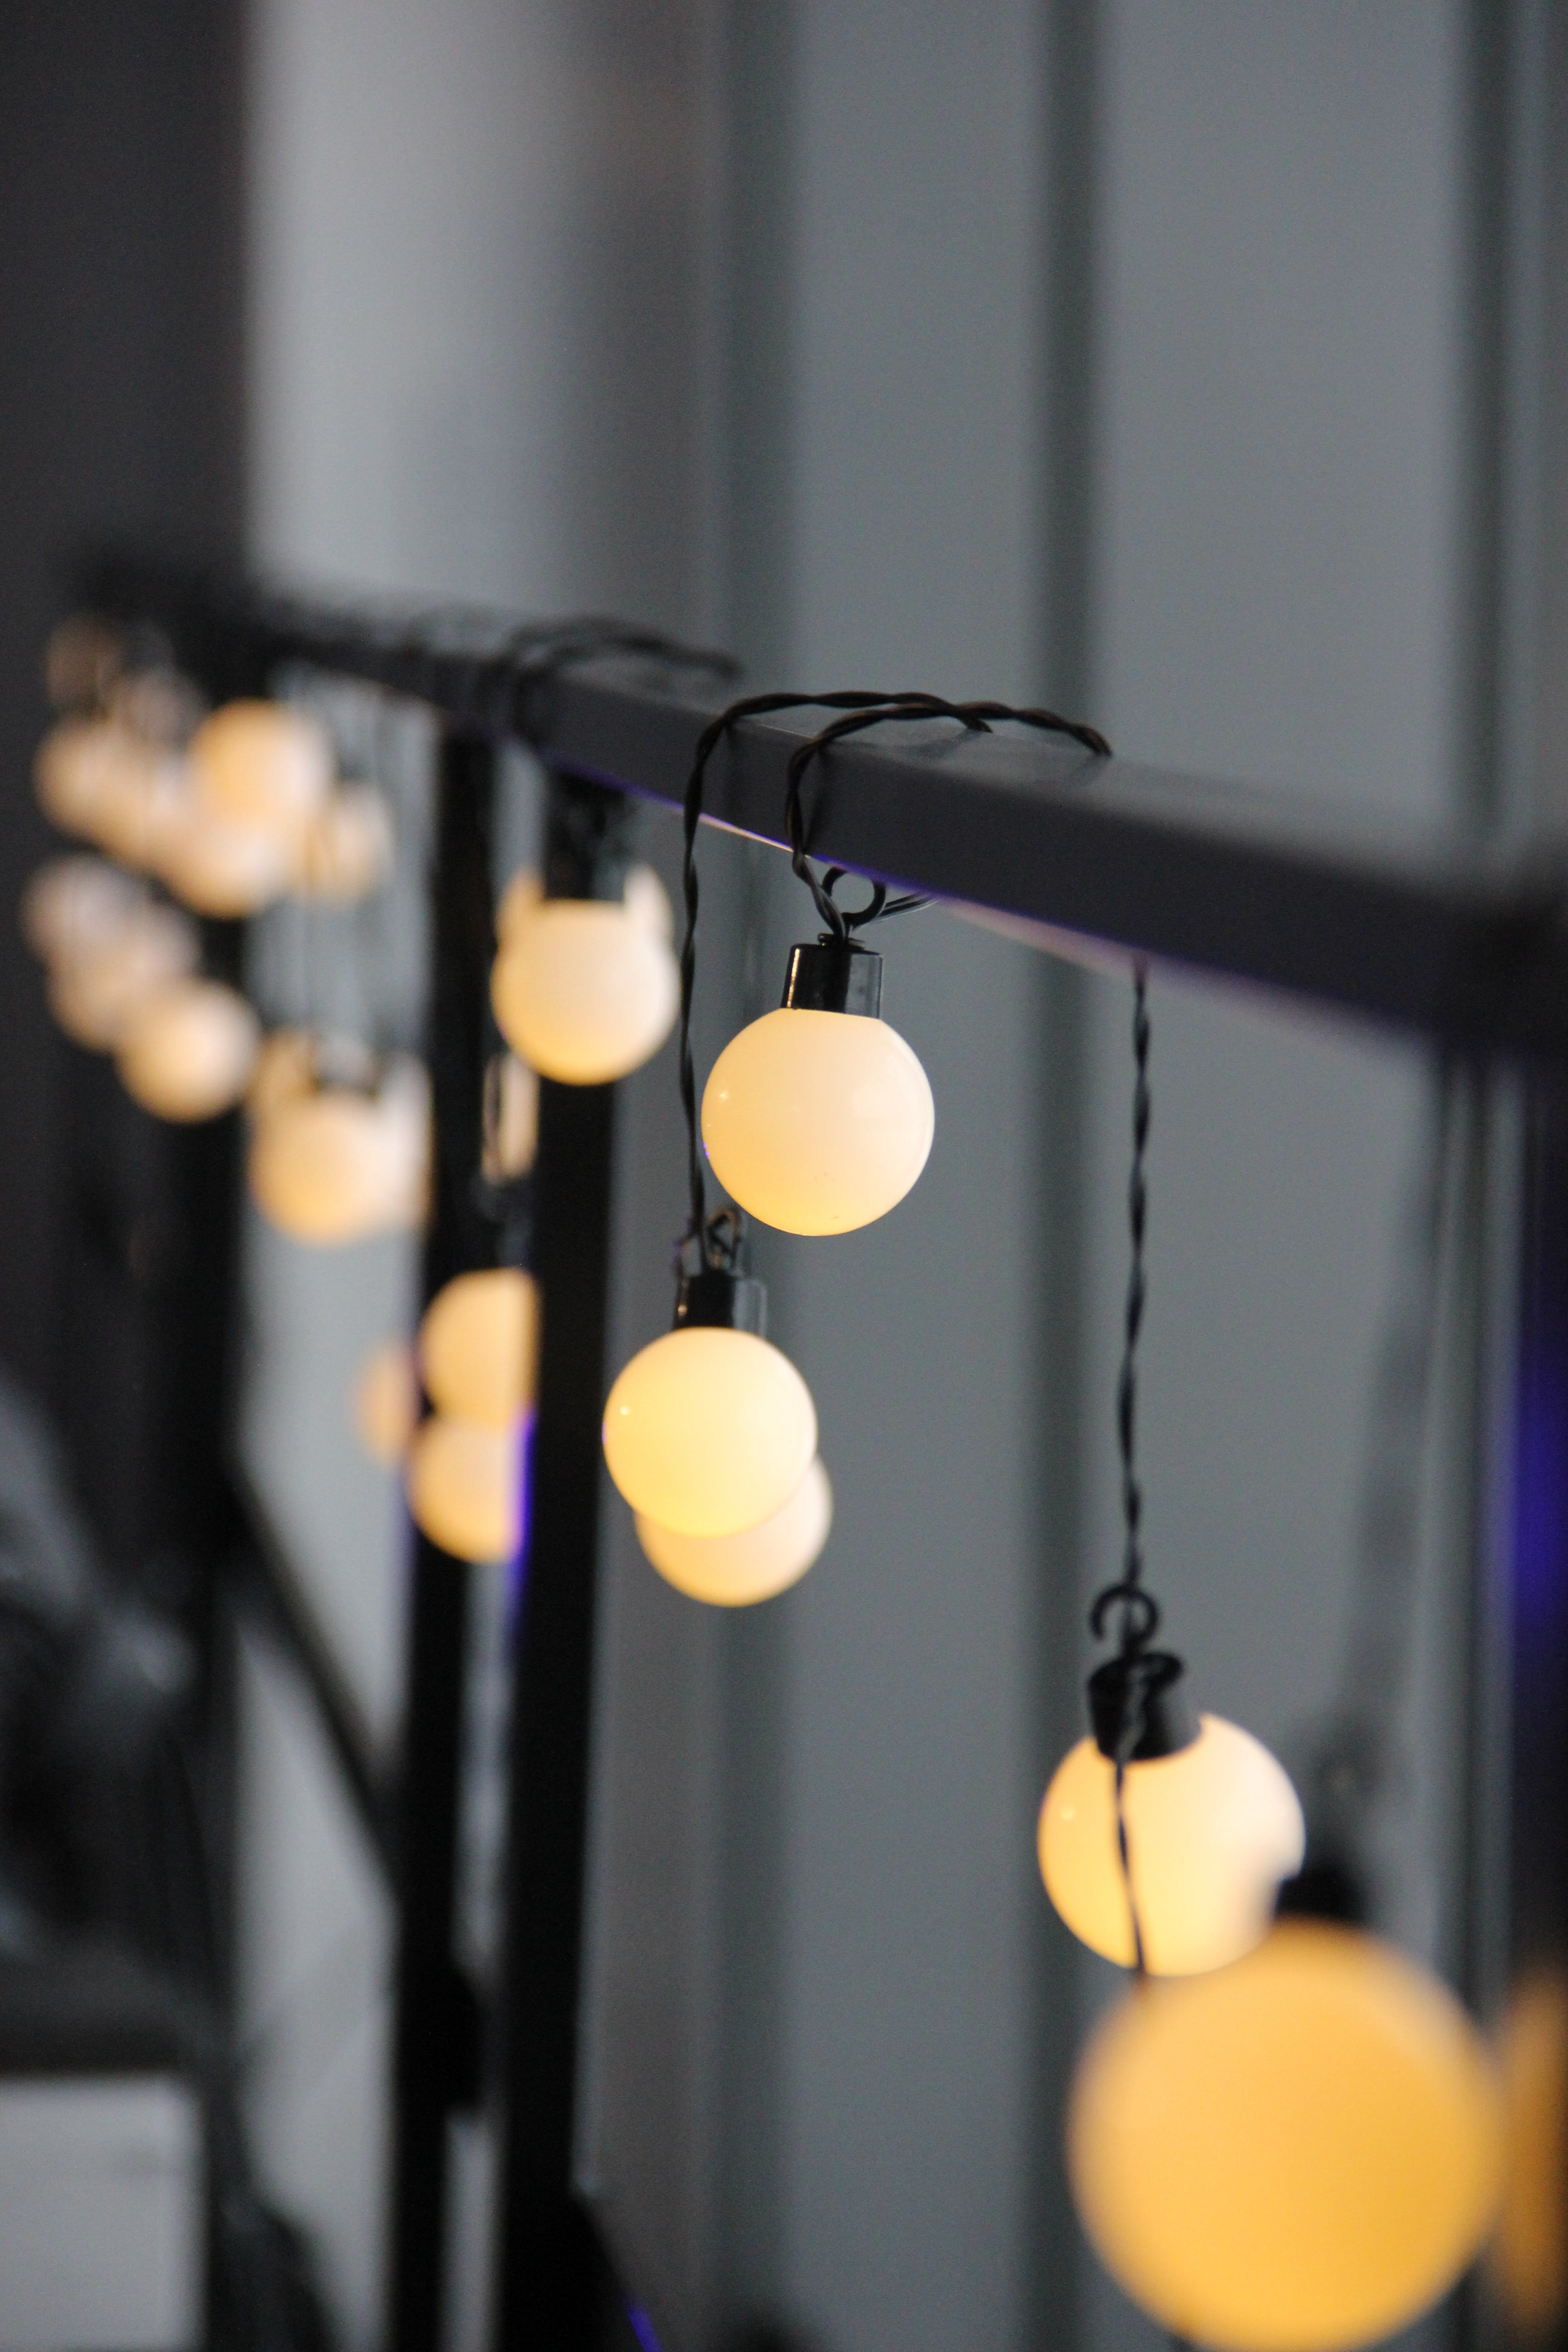 Selective Focus Photo of String Lights